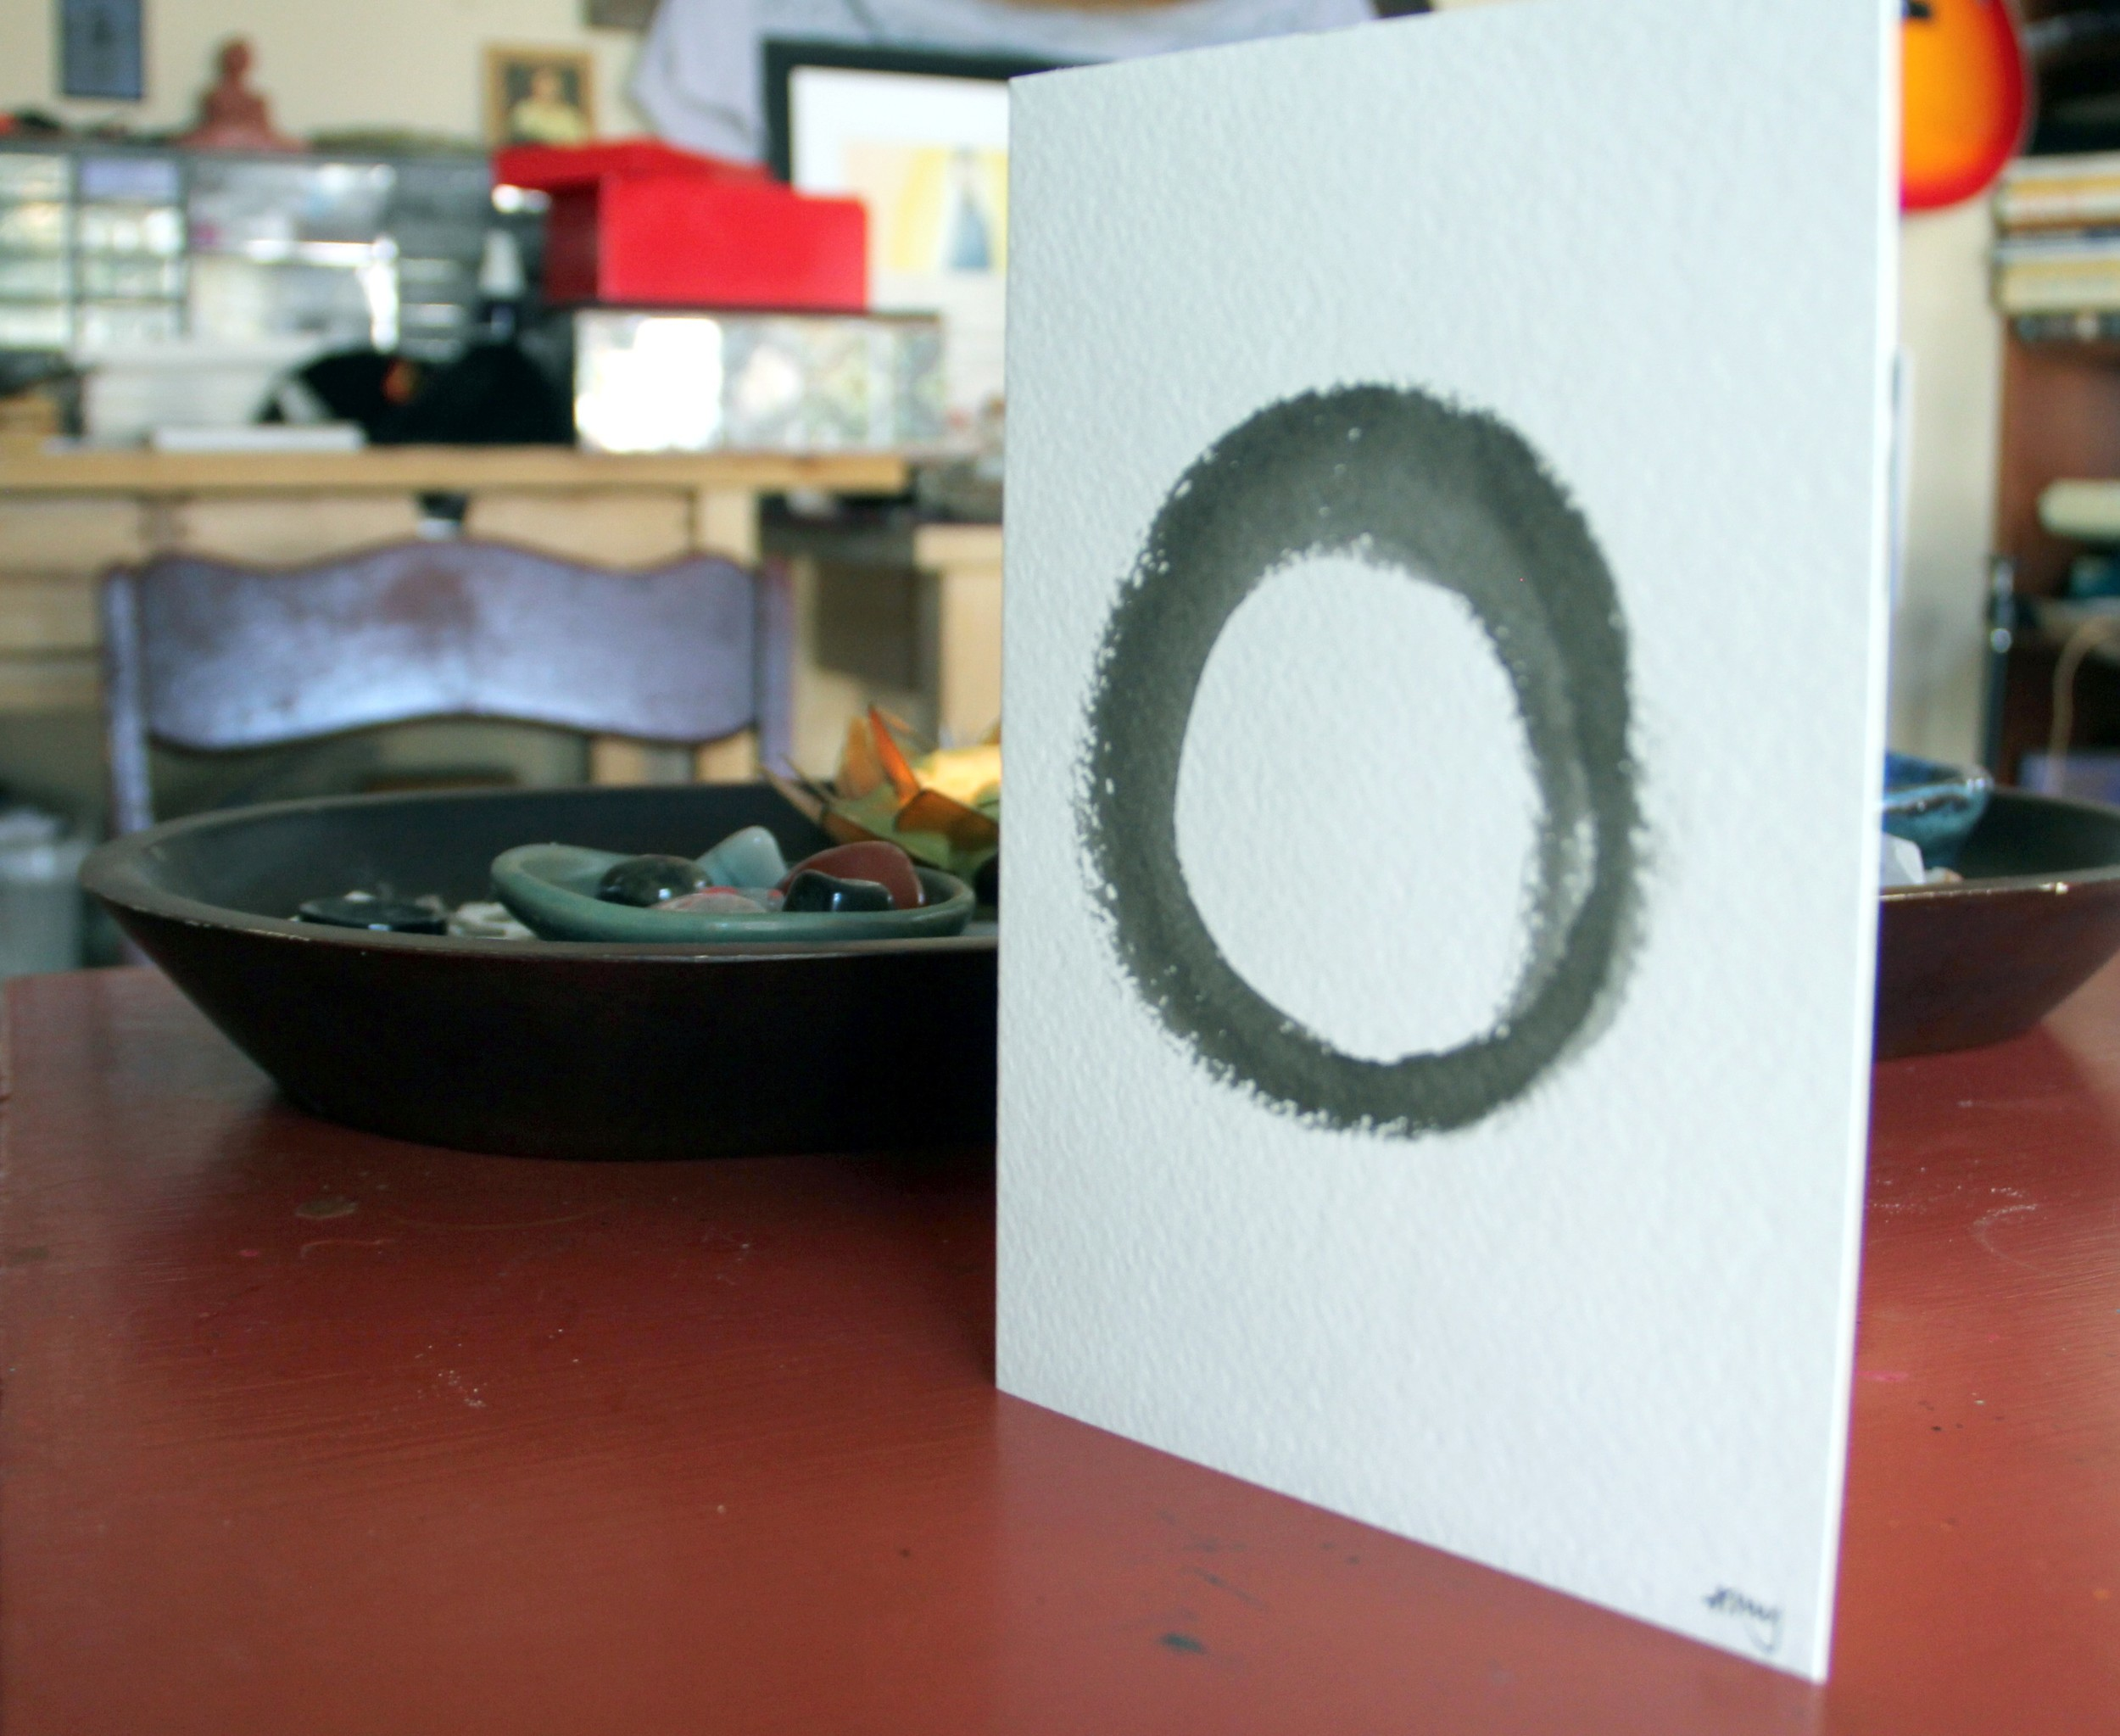 enso meditation remains a strong part of my meditation practice.